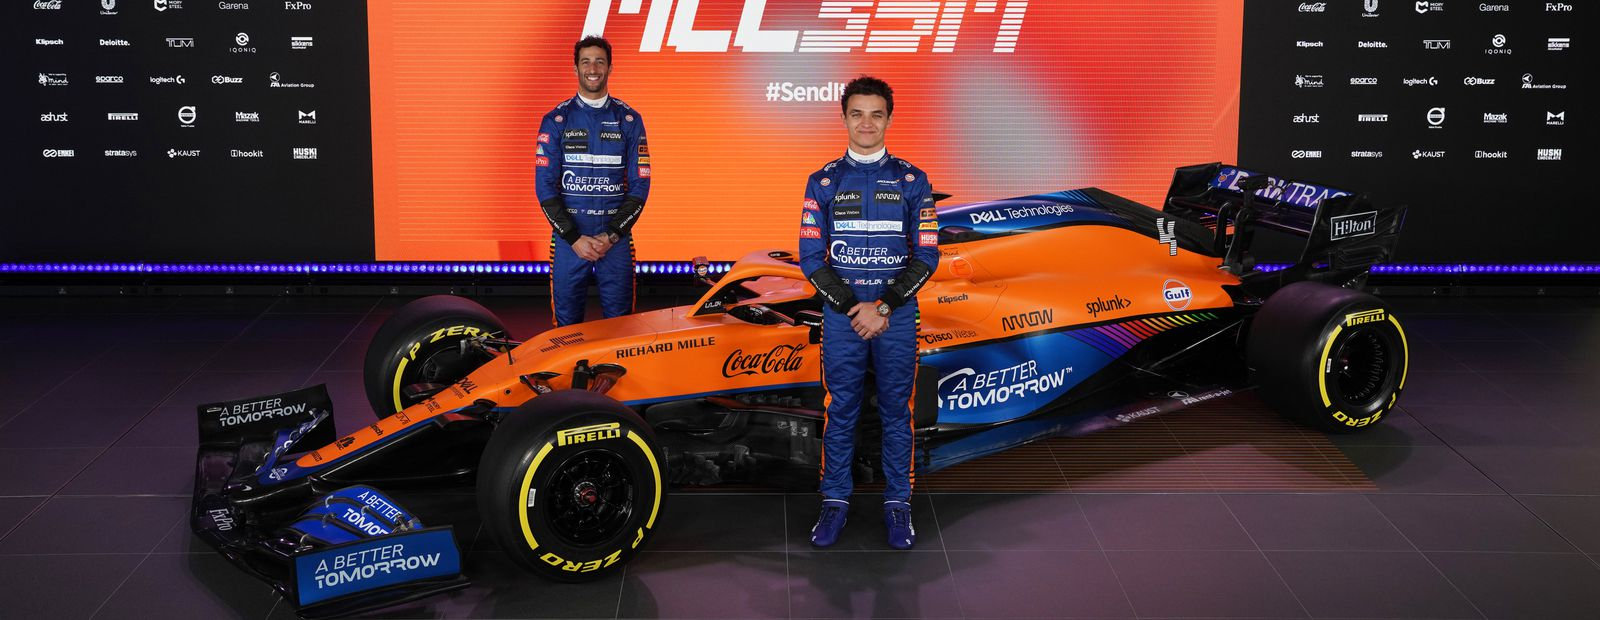 How Darktrace kept the McLaren team launch secure with cyber AI